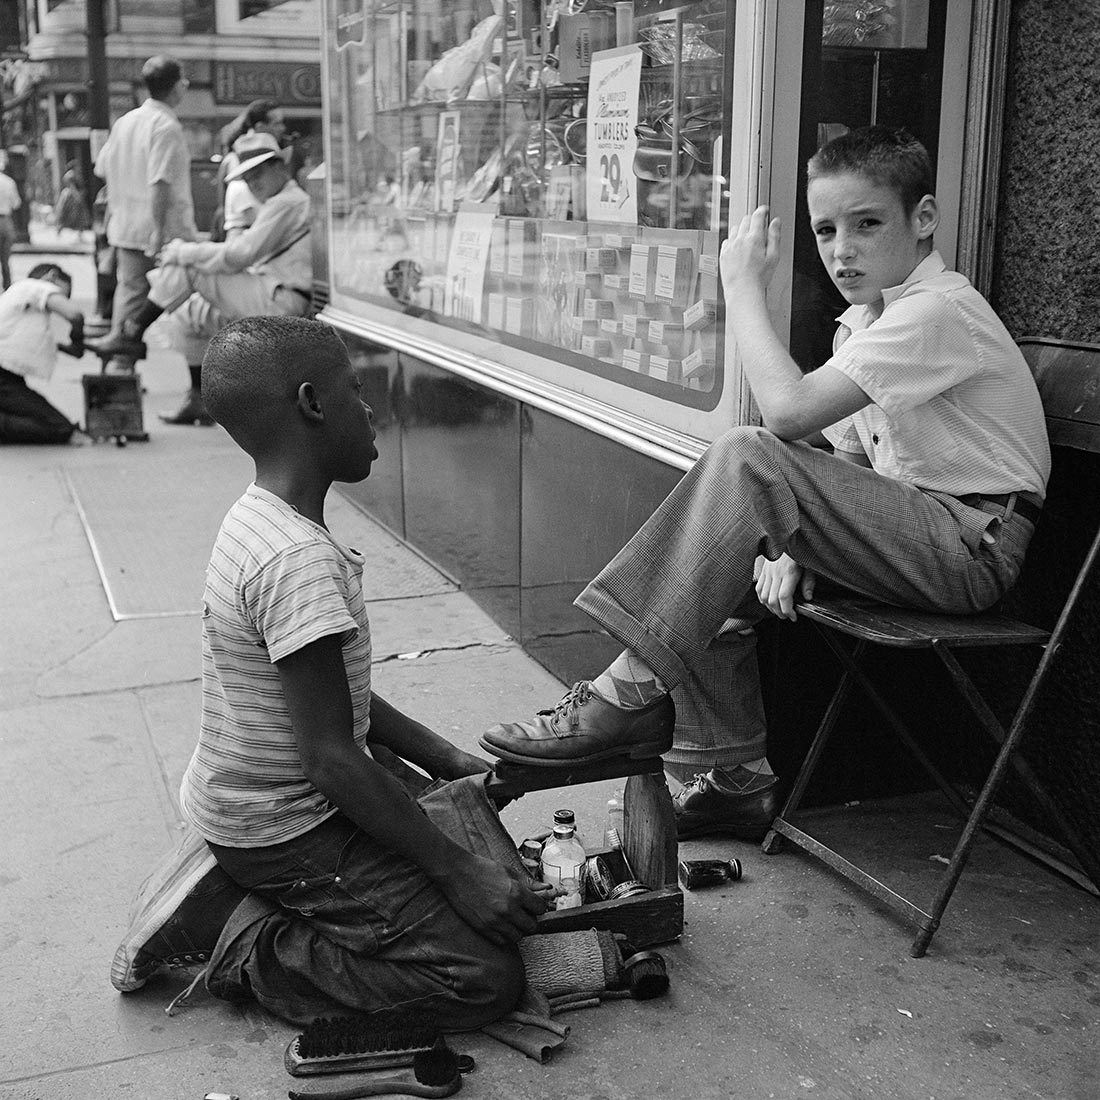 Masters of street photography vivian dorothea maier for Rent boy new york